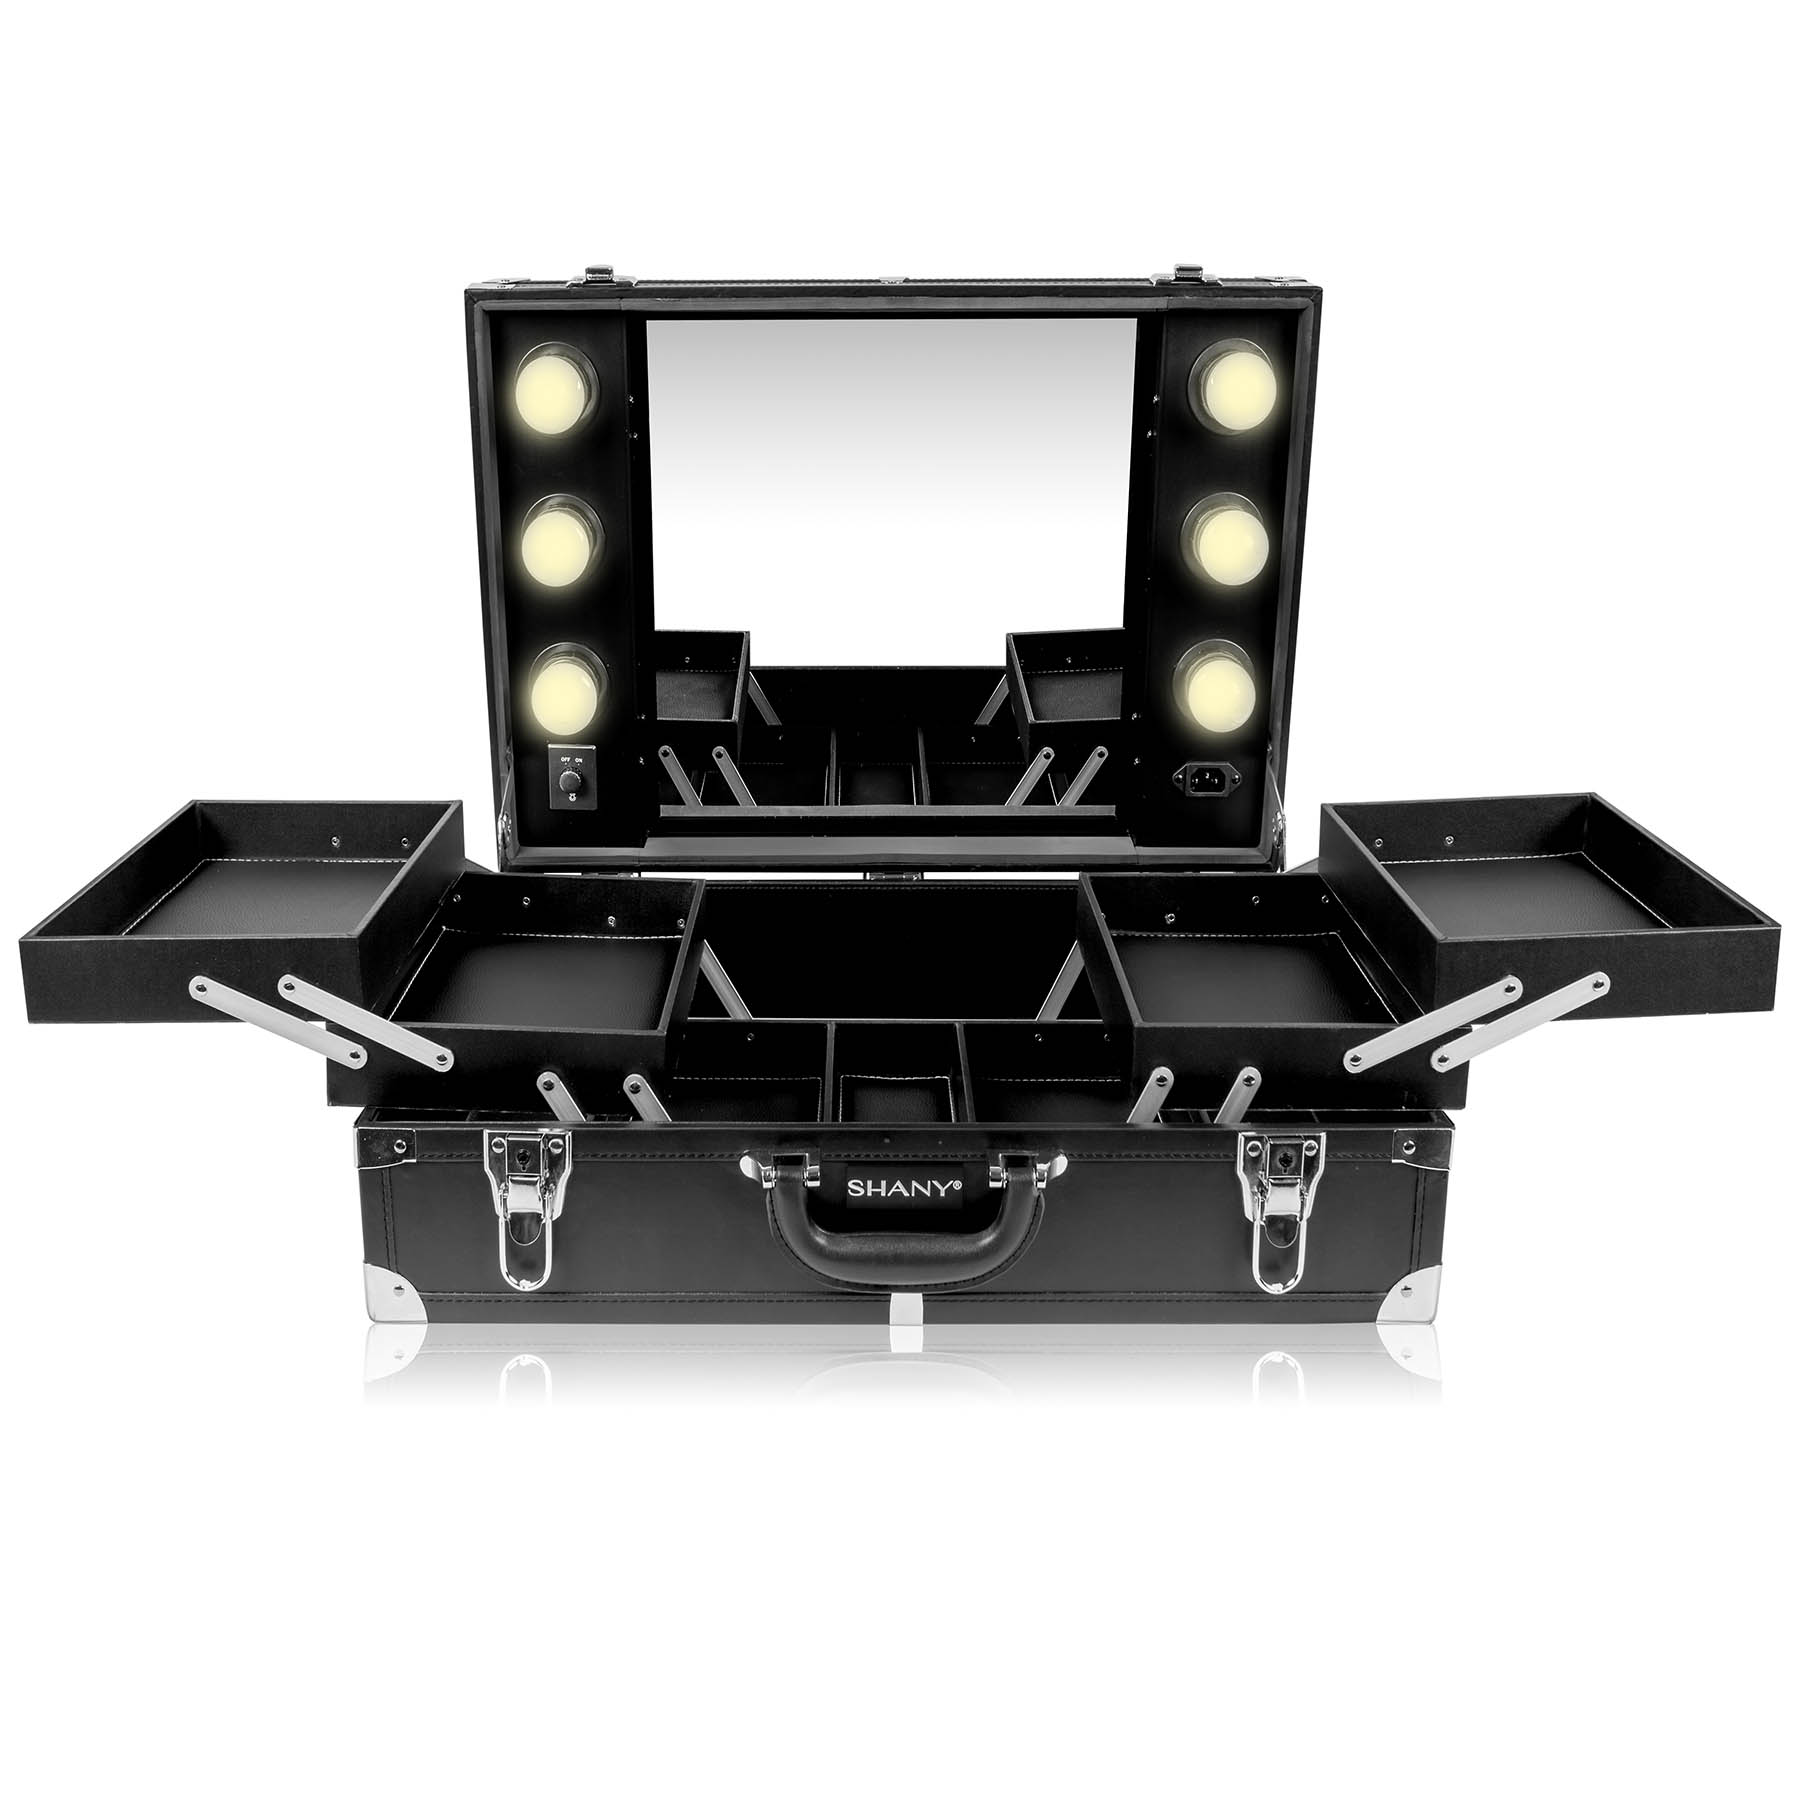 SHANY-Studio-To-Go-Tabletop-Mirror-Makeup-Station-with-Dimmable-Lights miniature 4